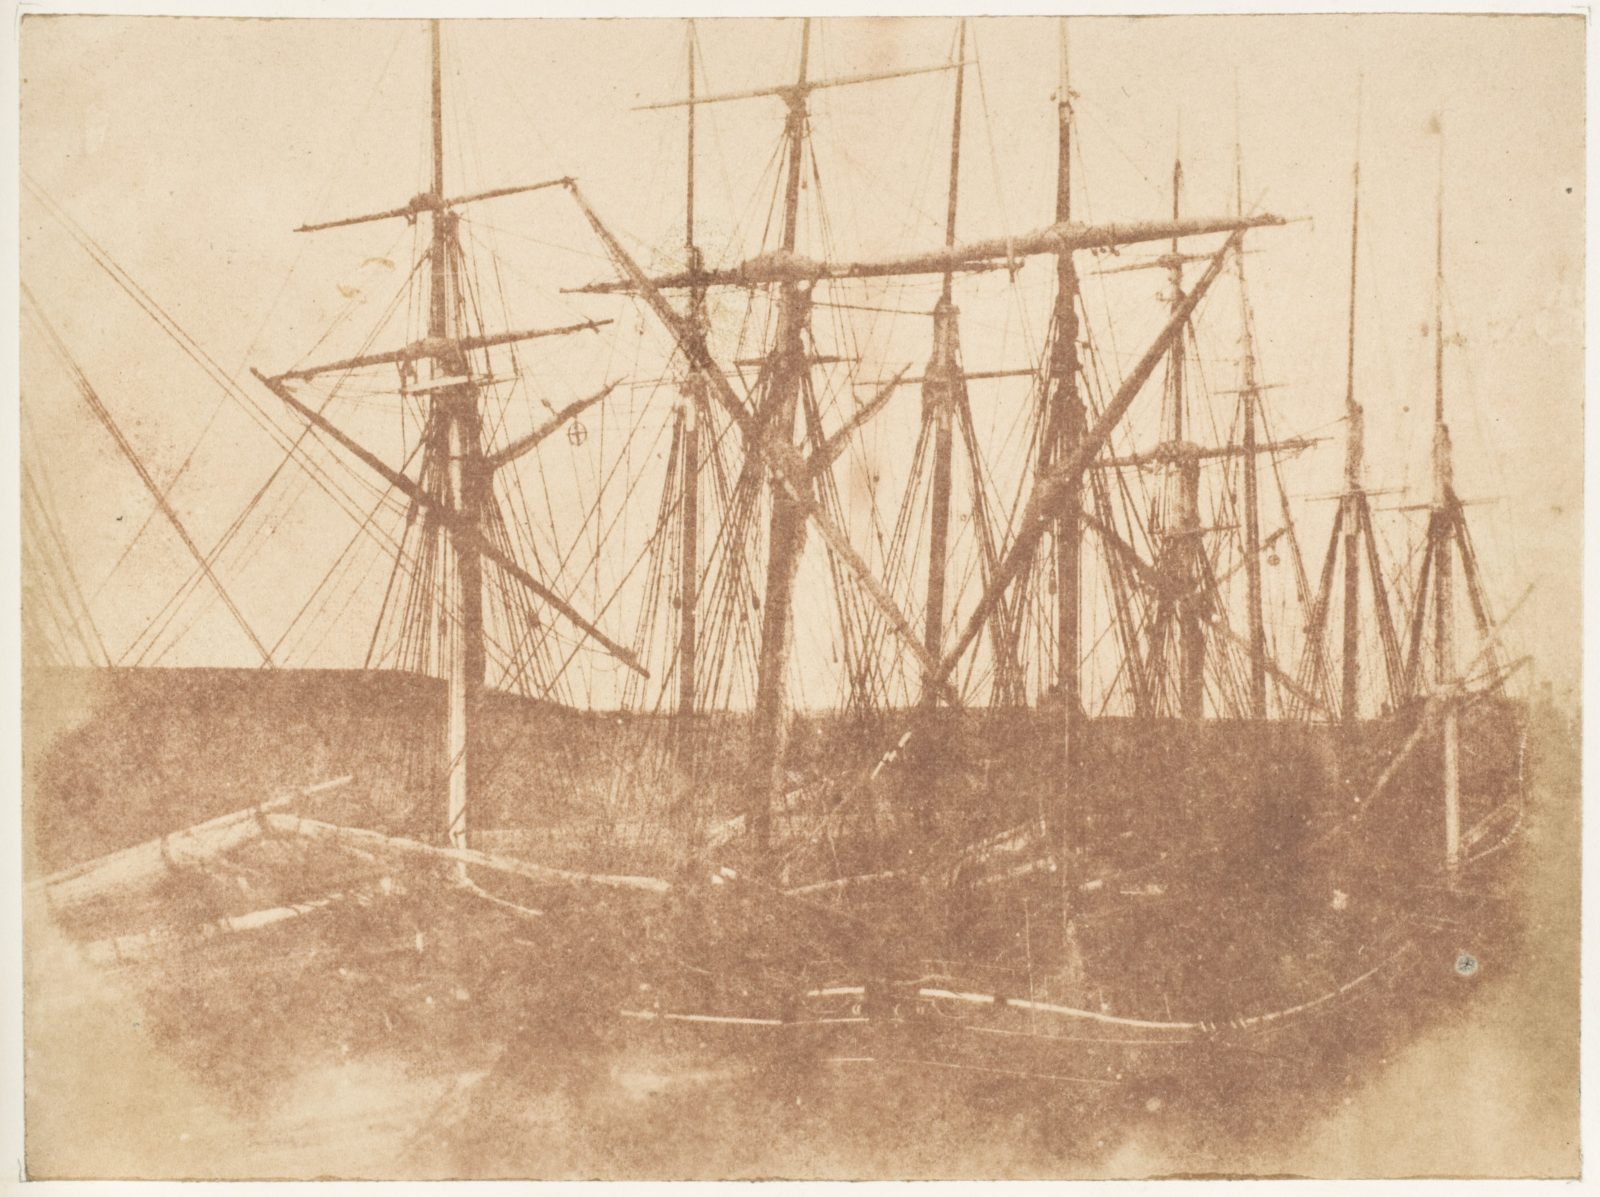 St. Andrews (?). Ships in the Harbor